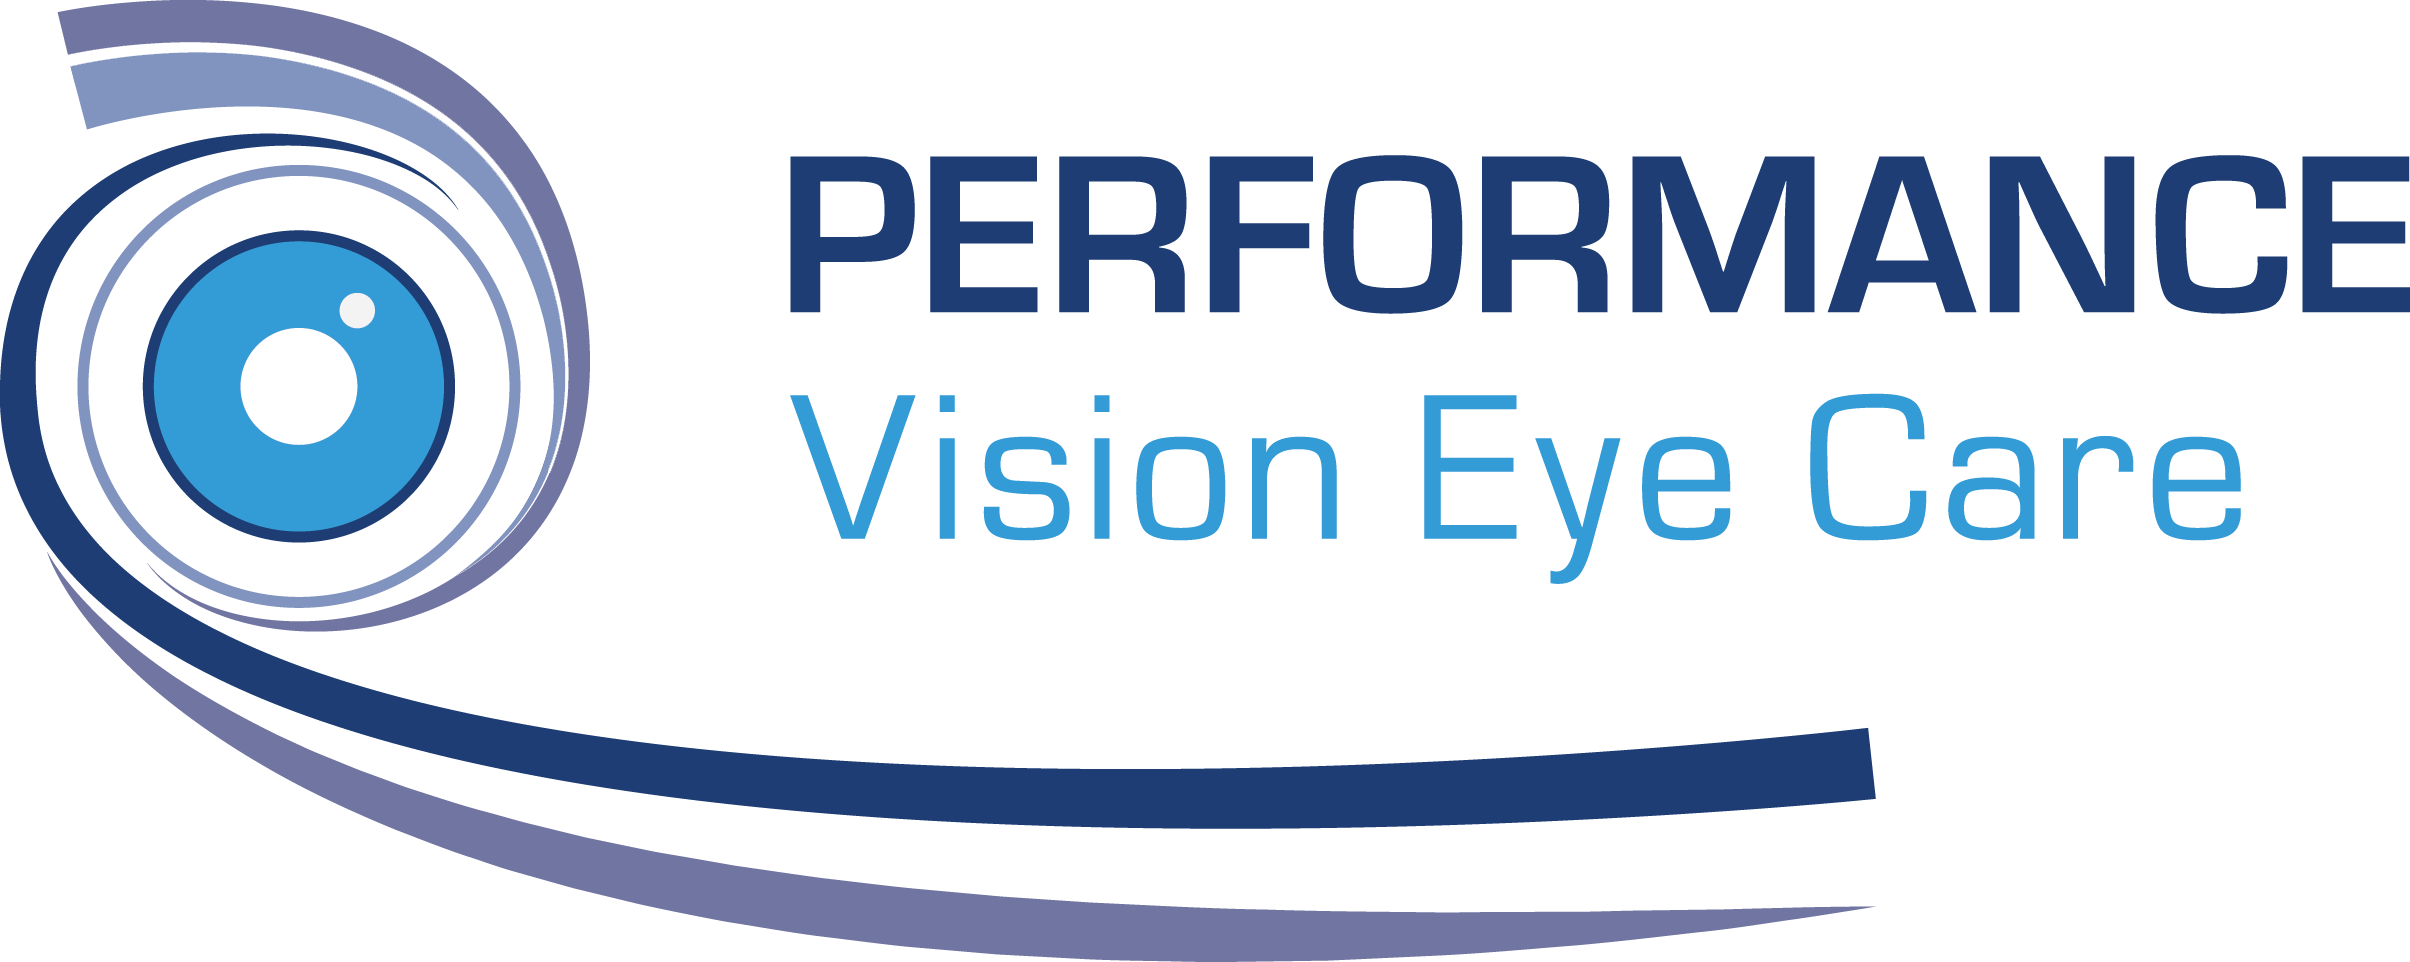 Performance Vision Eye Care logo